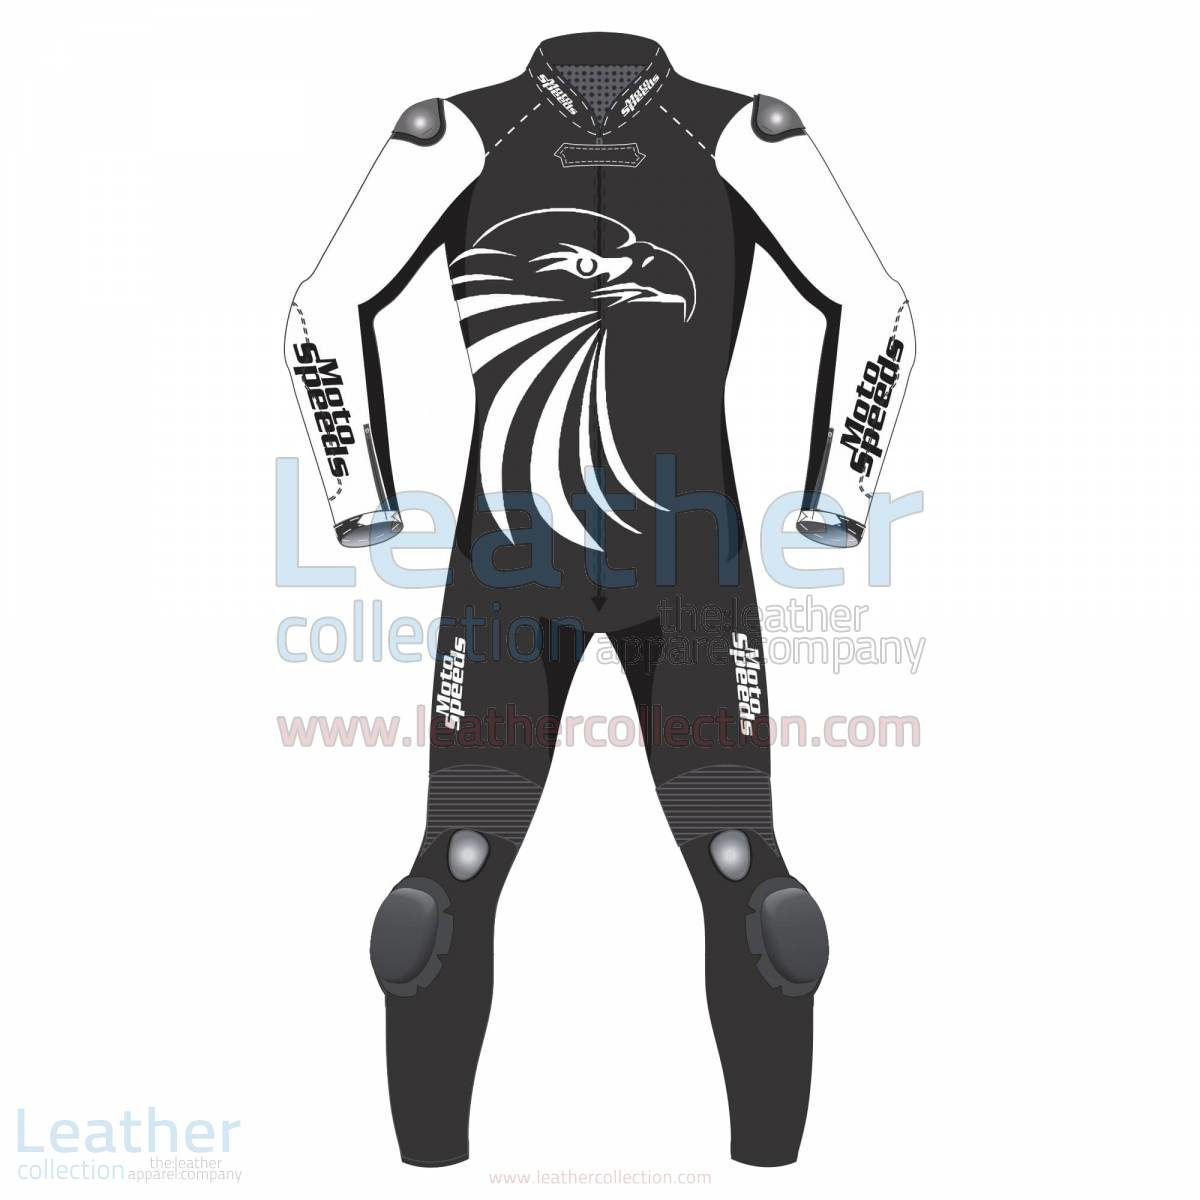 leather riding suit